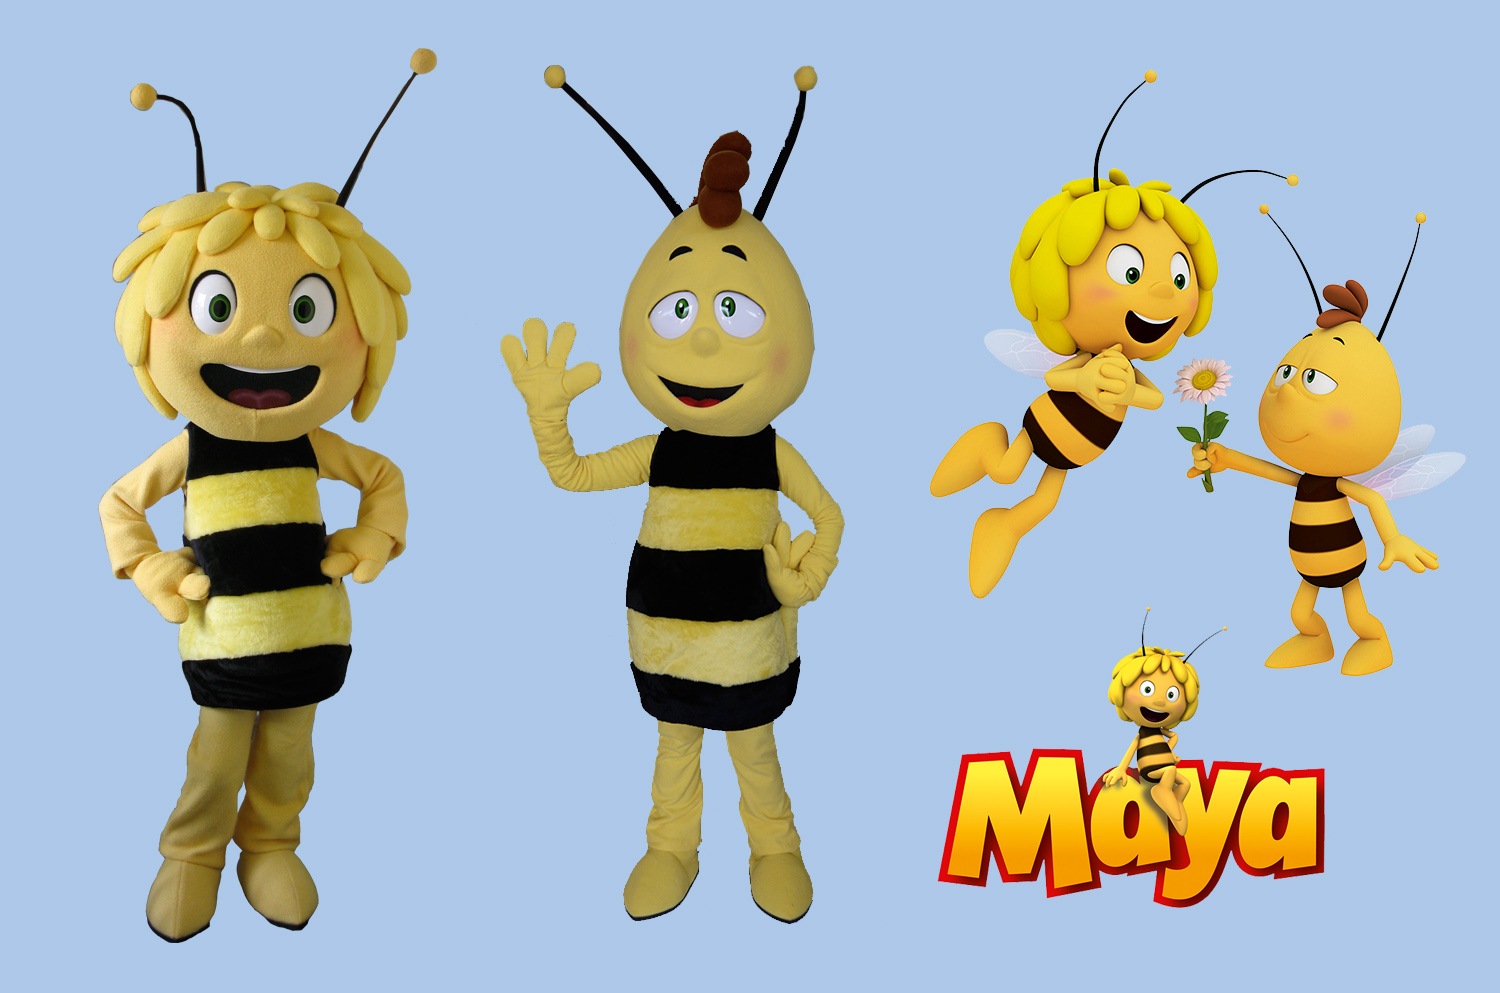 Maya and Willy the Bee.jpg